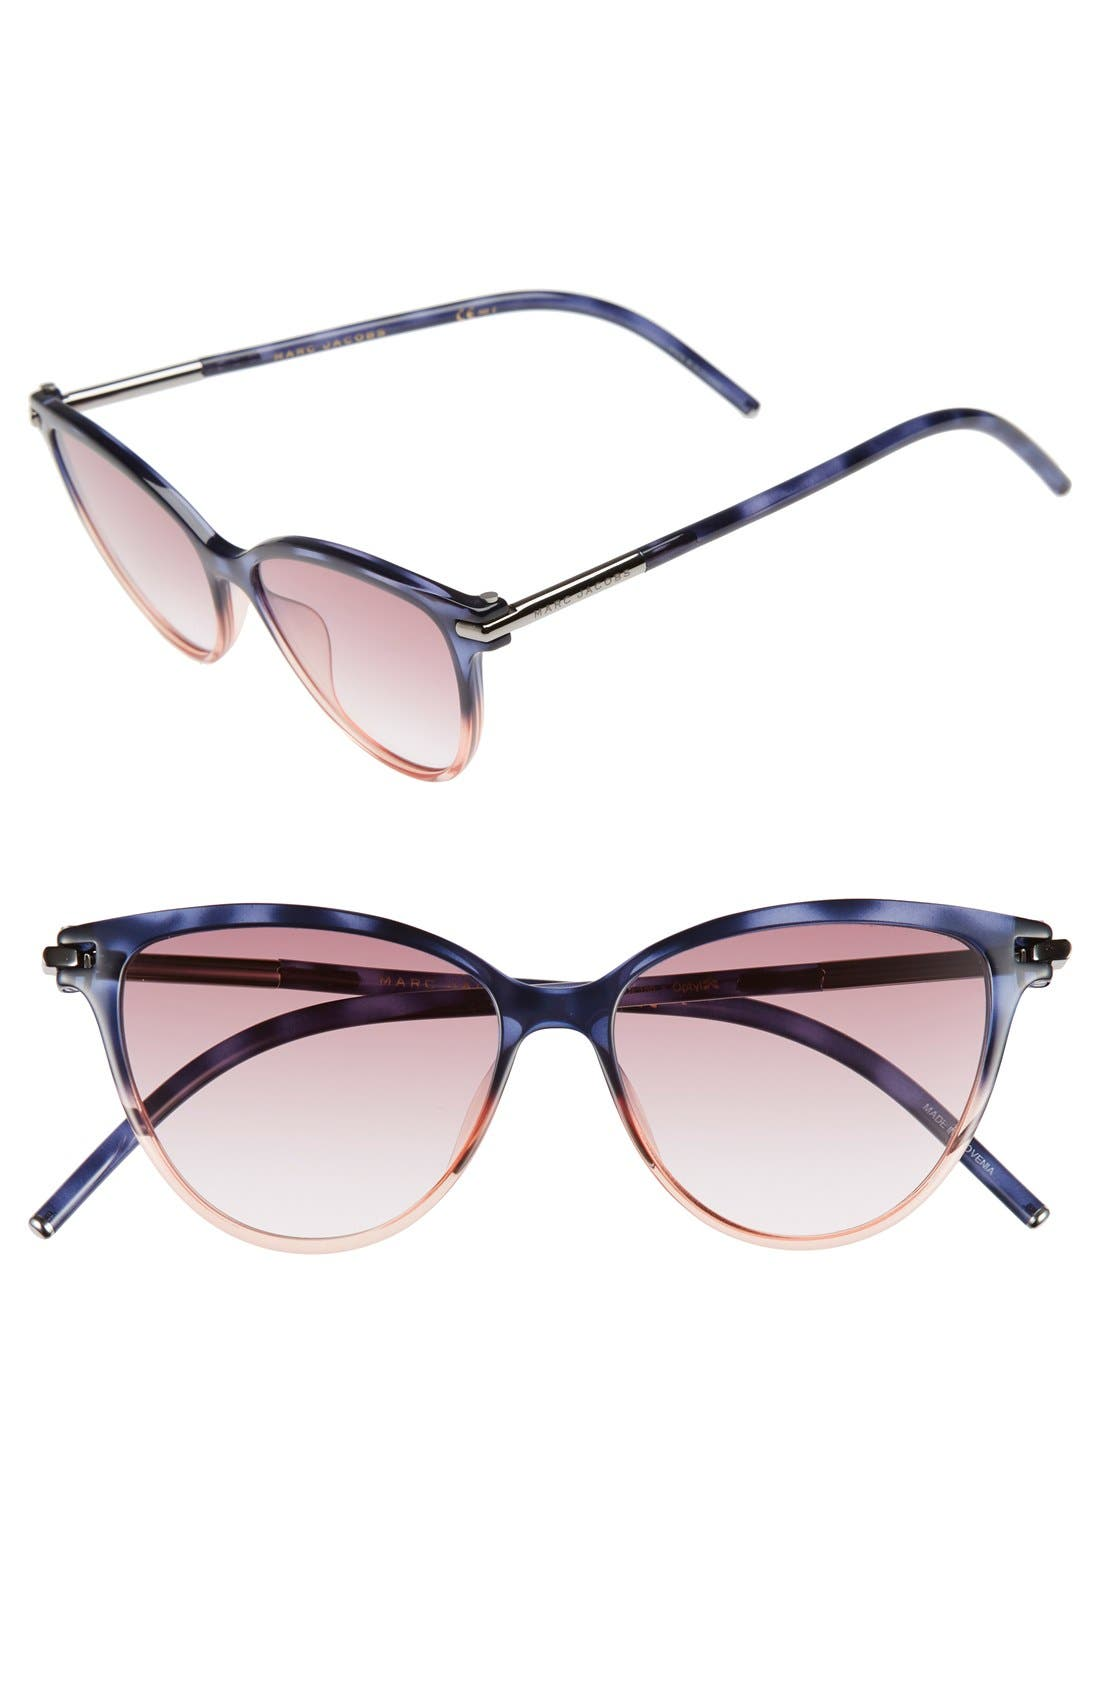 Alternate Image 1 Selected - MARC JACOBS 53mm Cat Eye Sunglasses